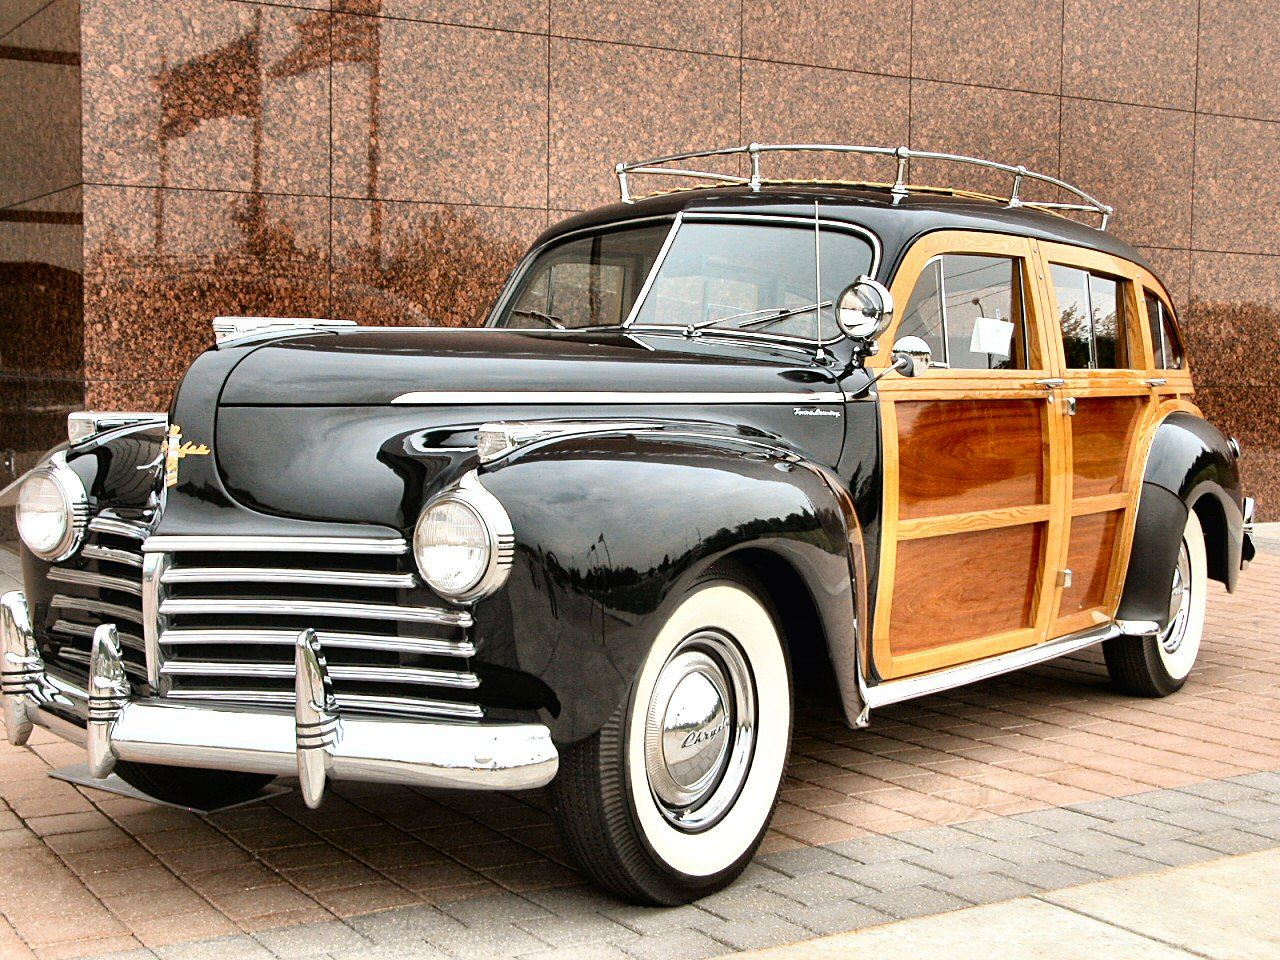 1941 chrysler town amp country woody station wagon parked wpc museum brick porch black lfvl n